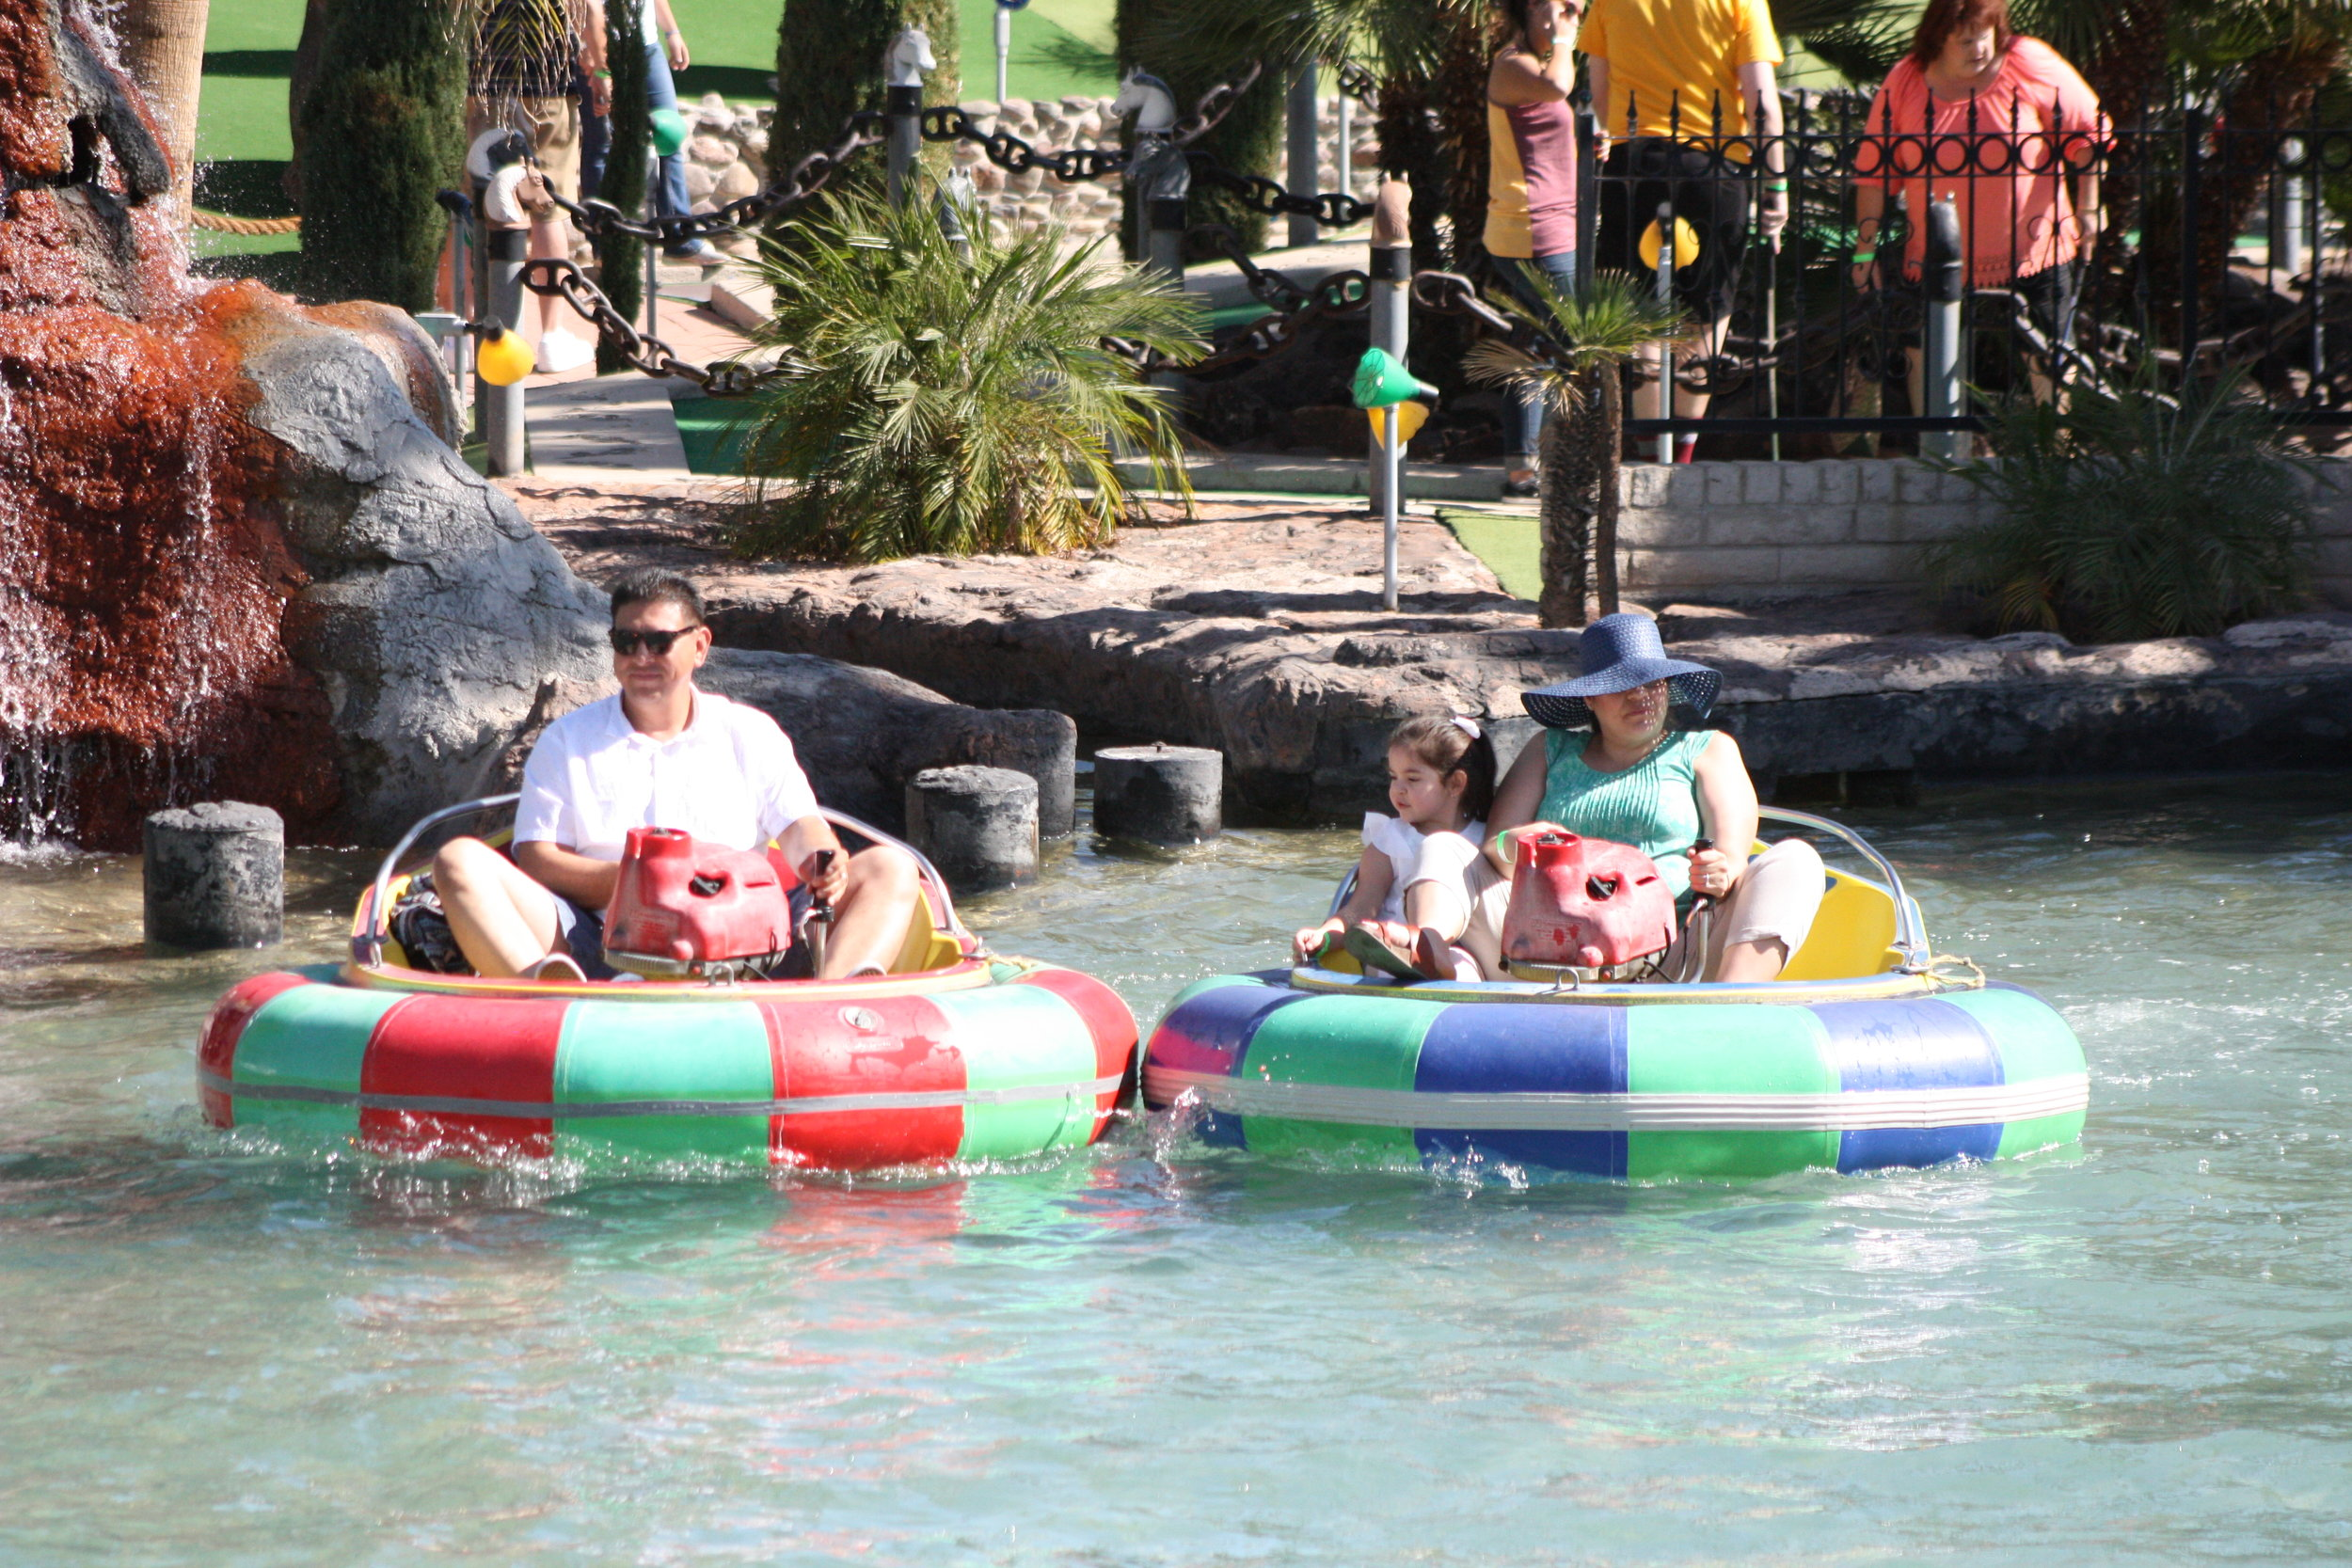 A family having fun on the bumper boats.